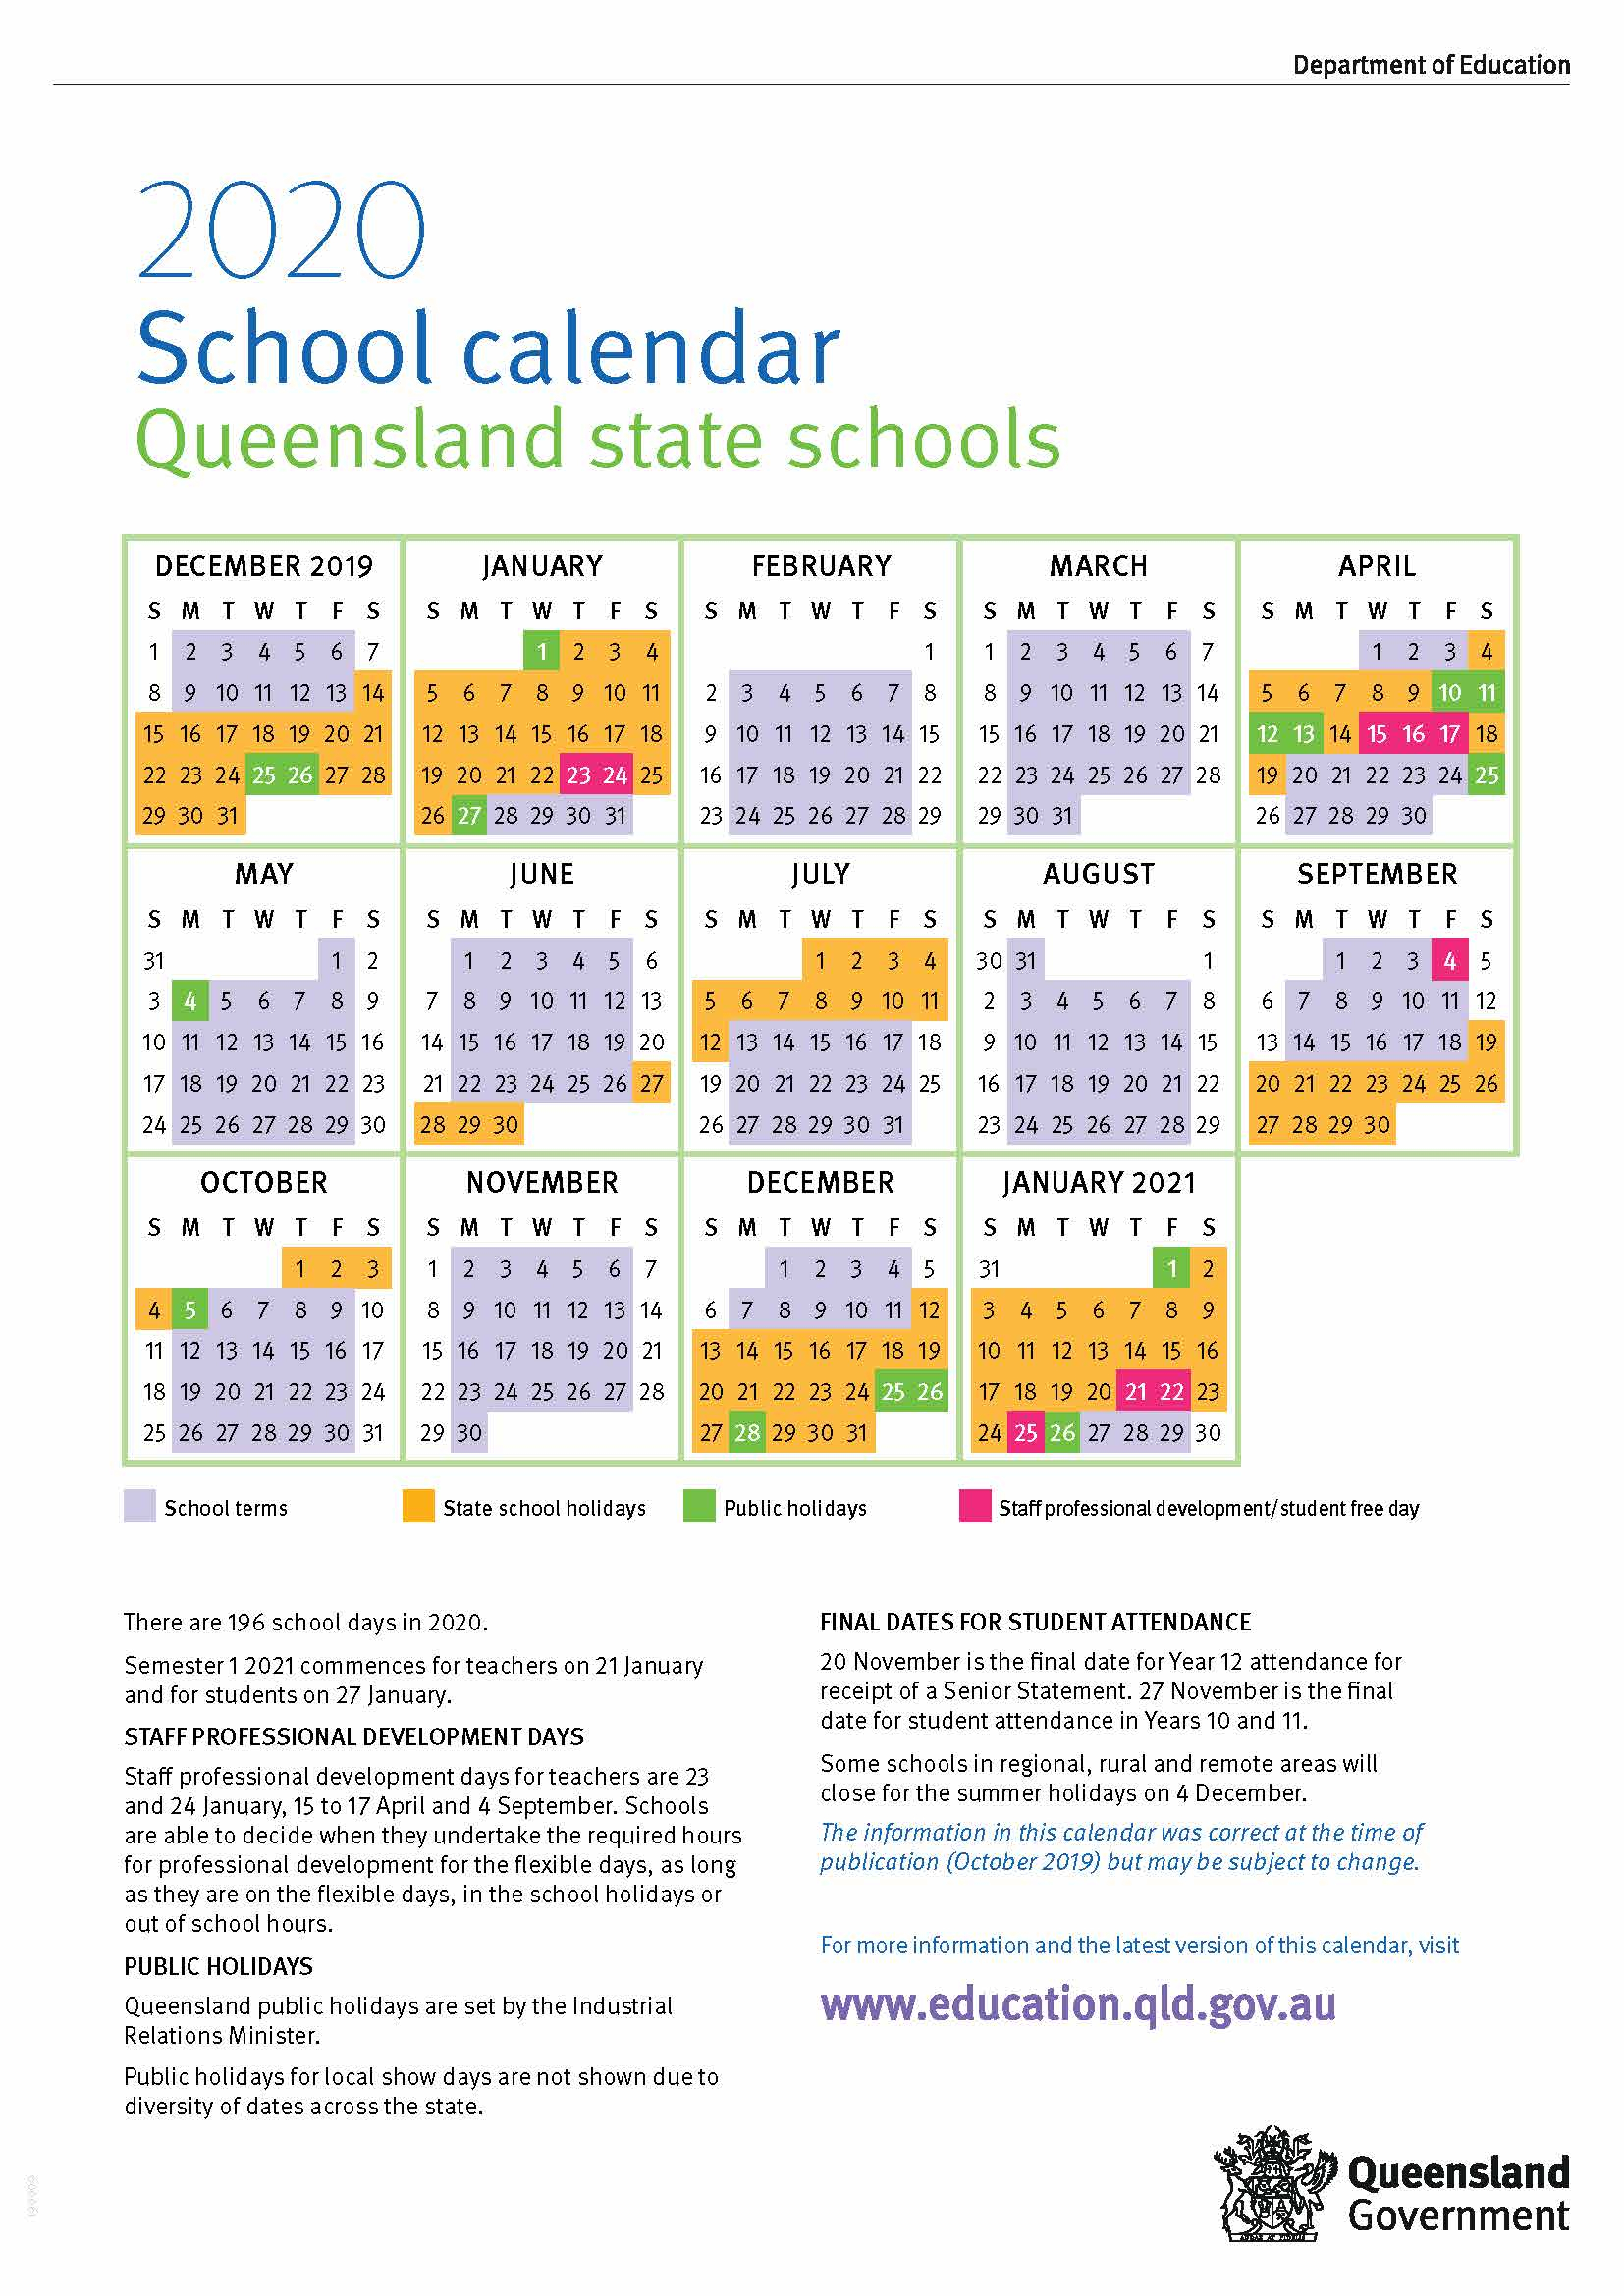 Pick 2020 School Calendar Queensland State Schools